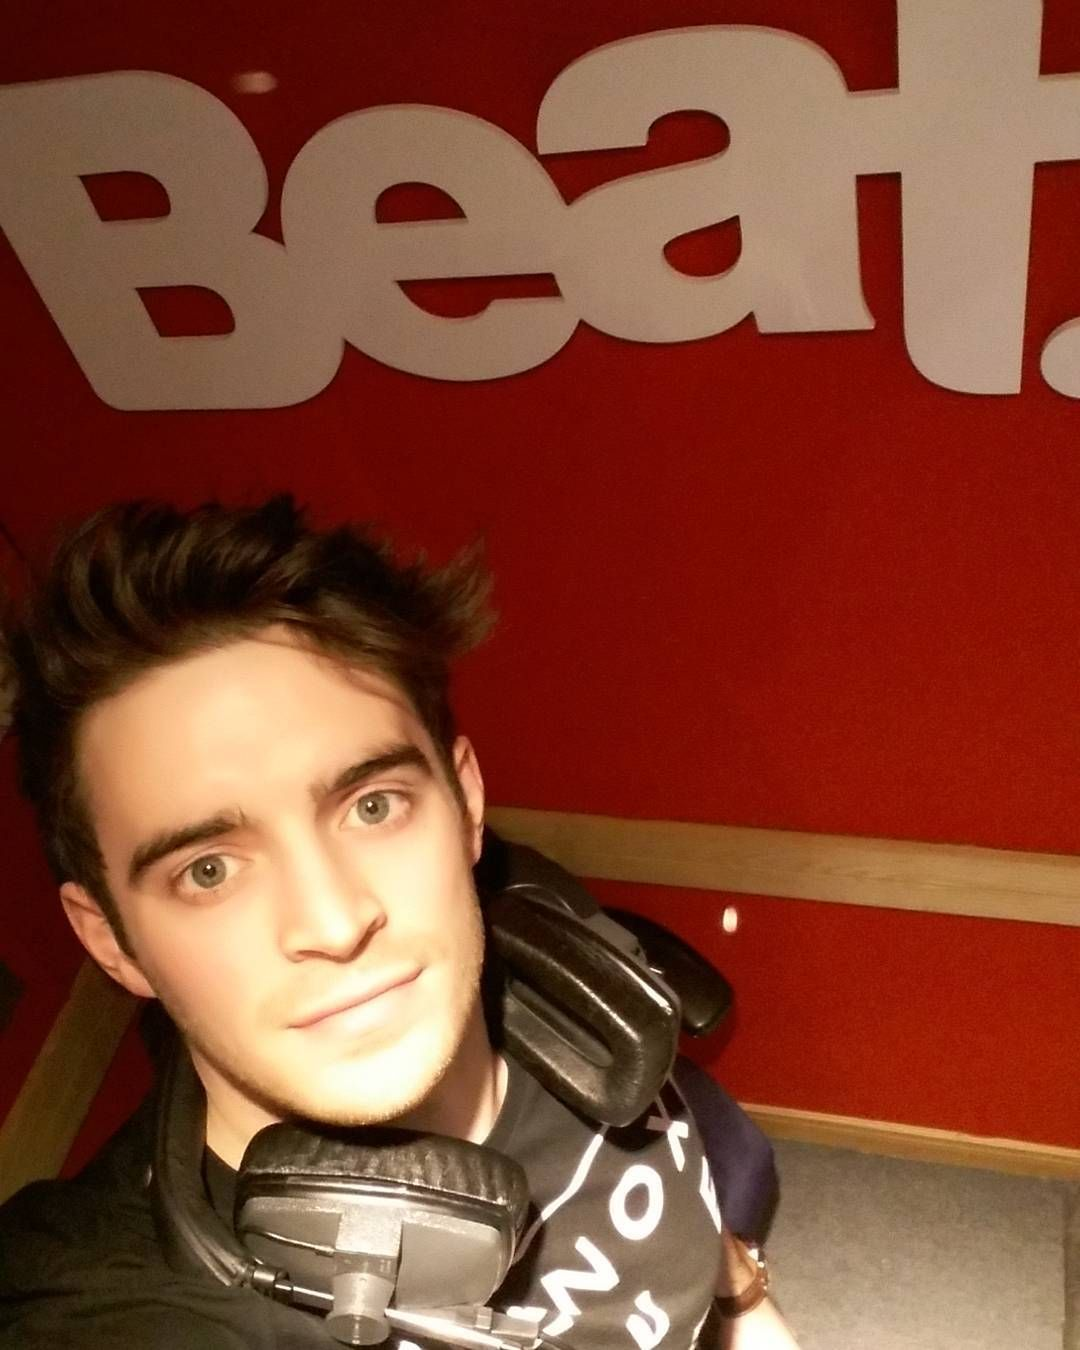 Hey it's @petercollins11 here on #TheTakeover what do you want to hear on tonights Threesome?? Comment below